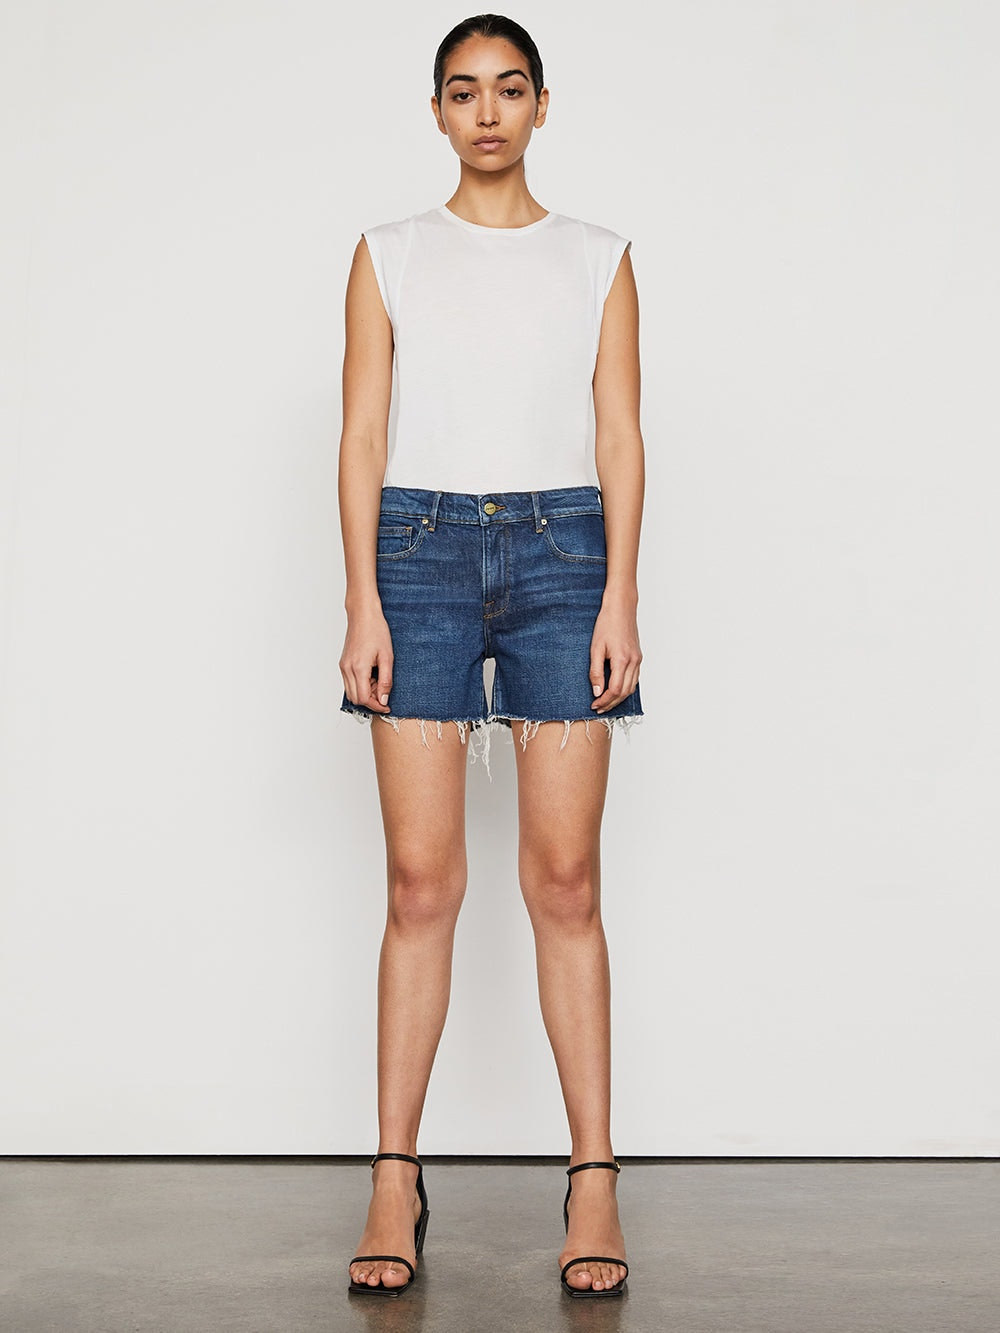 shorts front full body view alt:hover